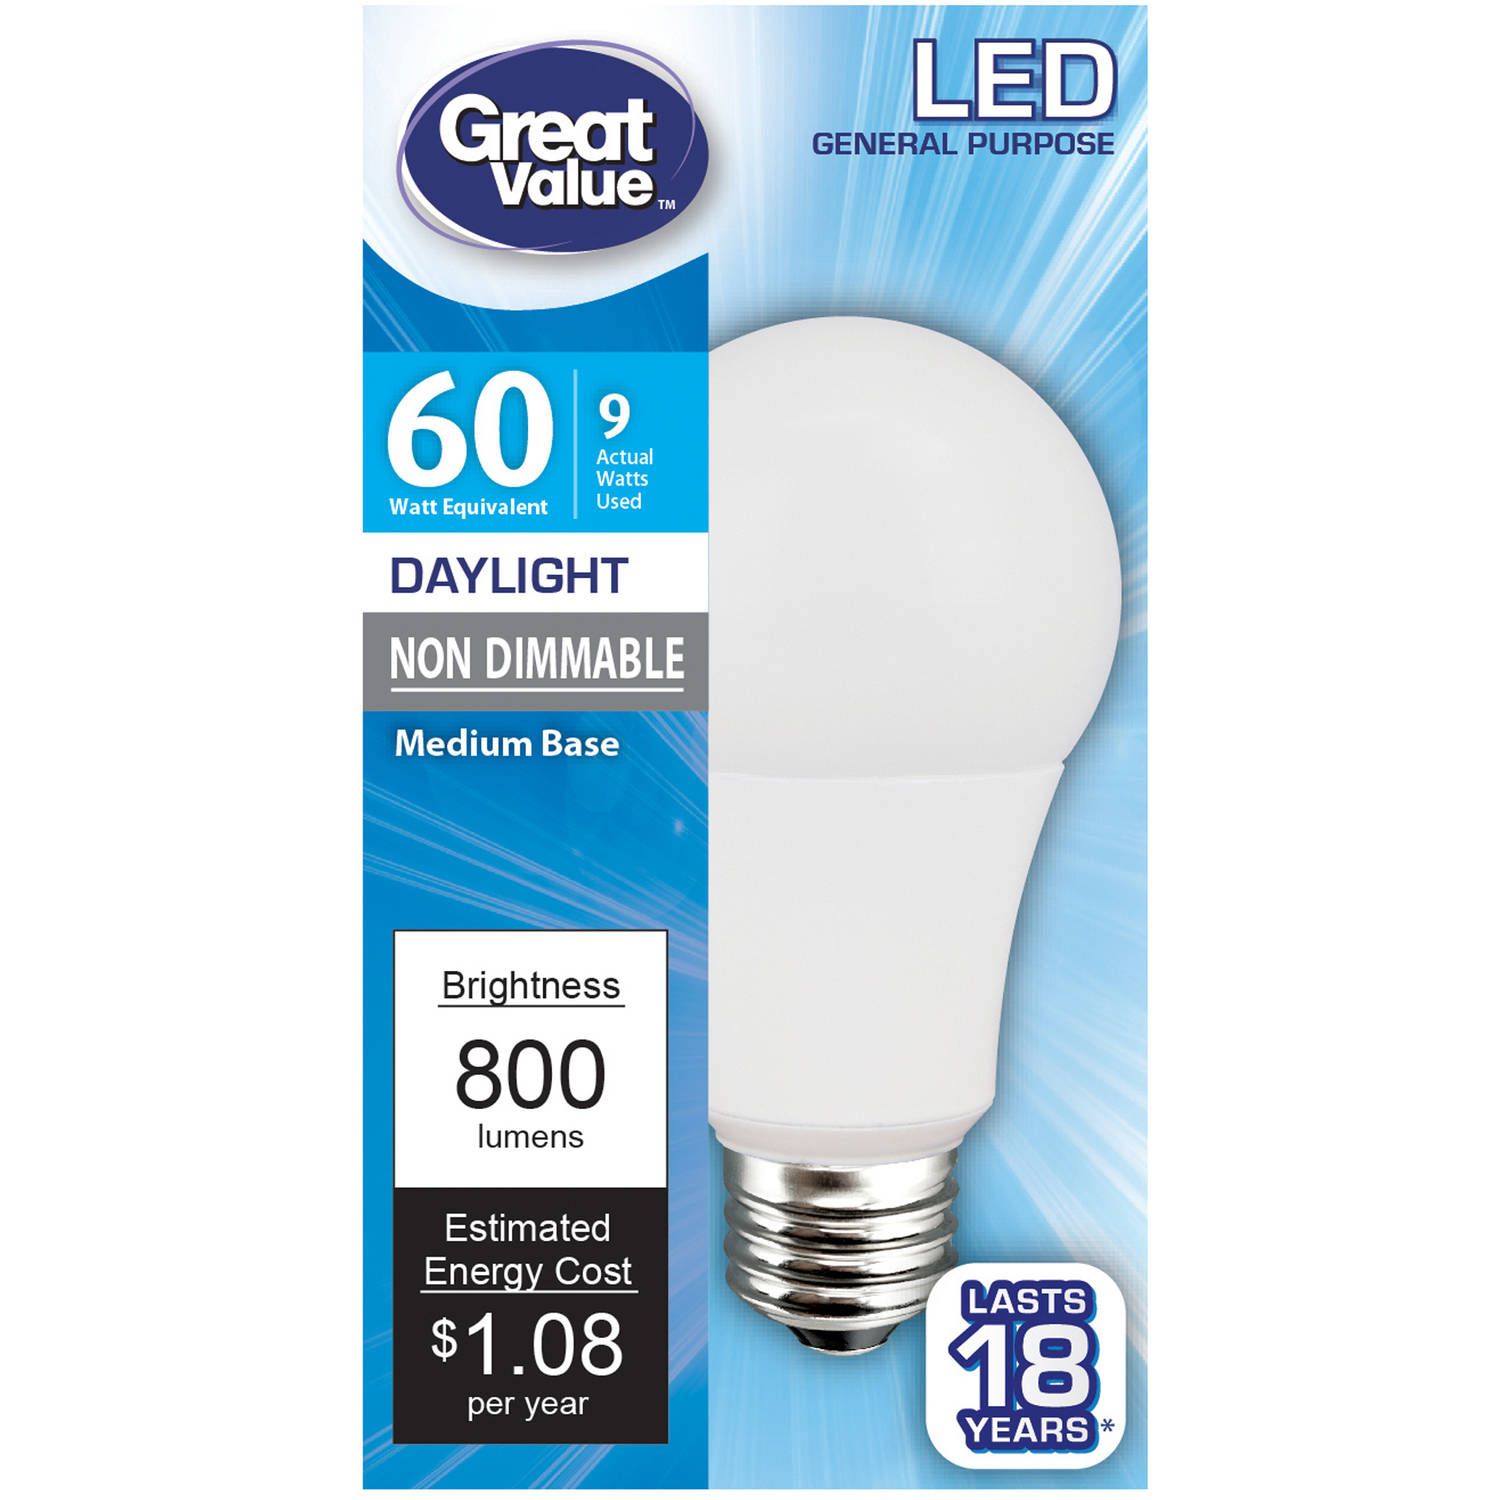 Charming Great Value LED Light Bulb 9W (60W Equivalent) A19 (E26), Daylight   Walmart .com Great Ideas